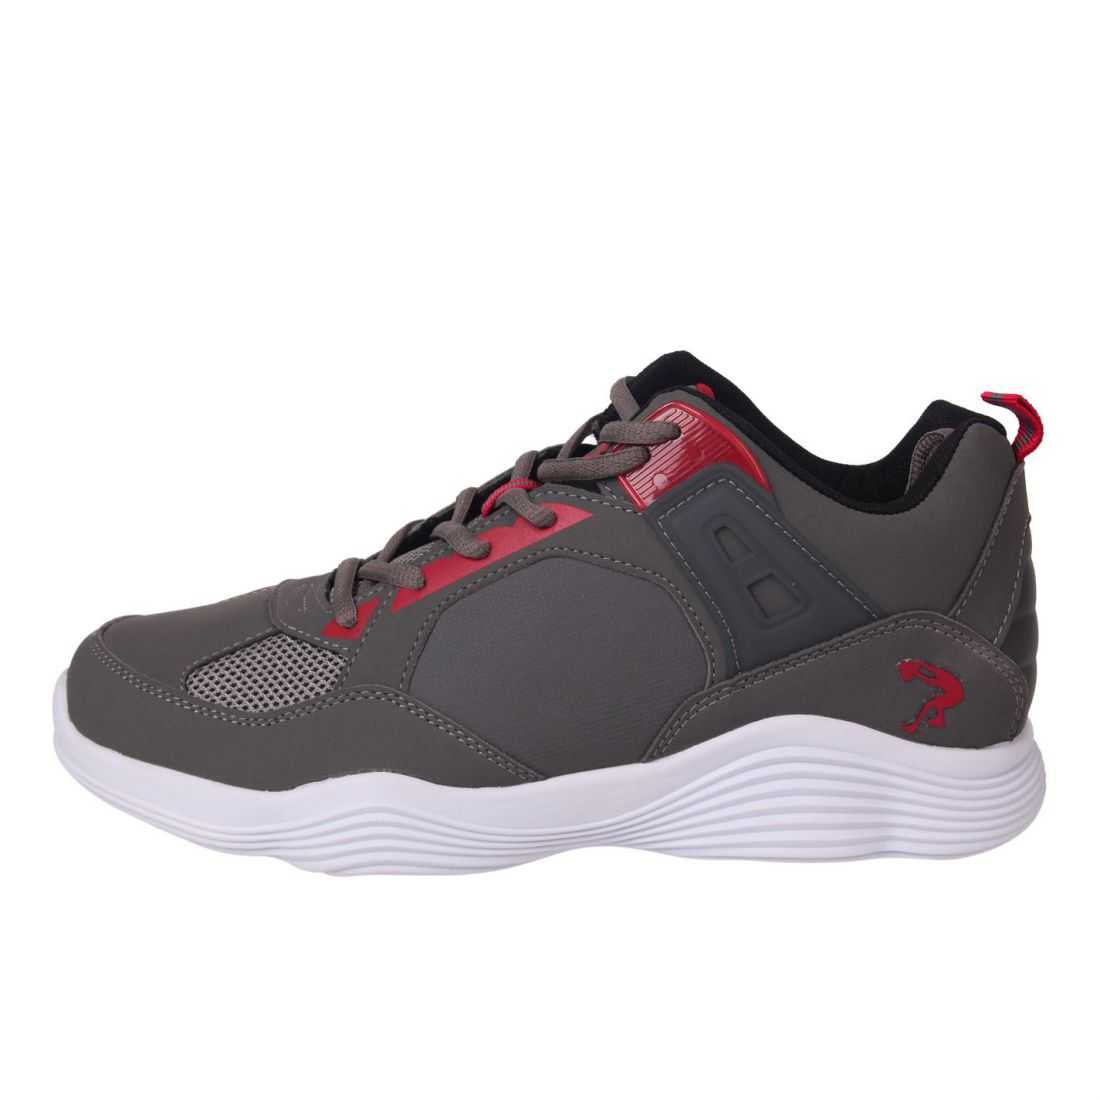 brand new 9b2a8 2eb56 Image is loading SHAQ-Mens-Diversion-Basketball-Trainers-Shoes-Lace-Up-